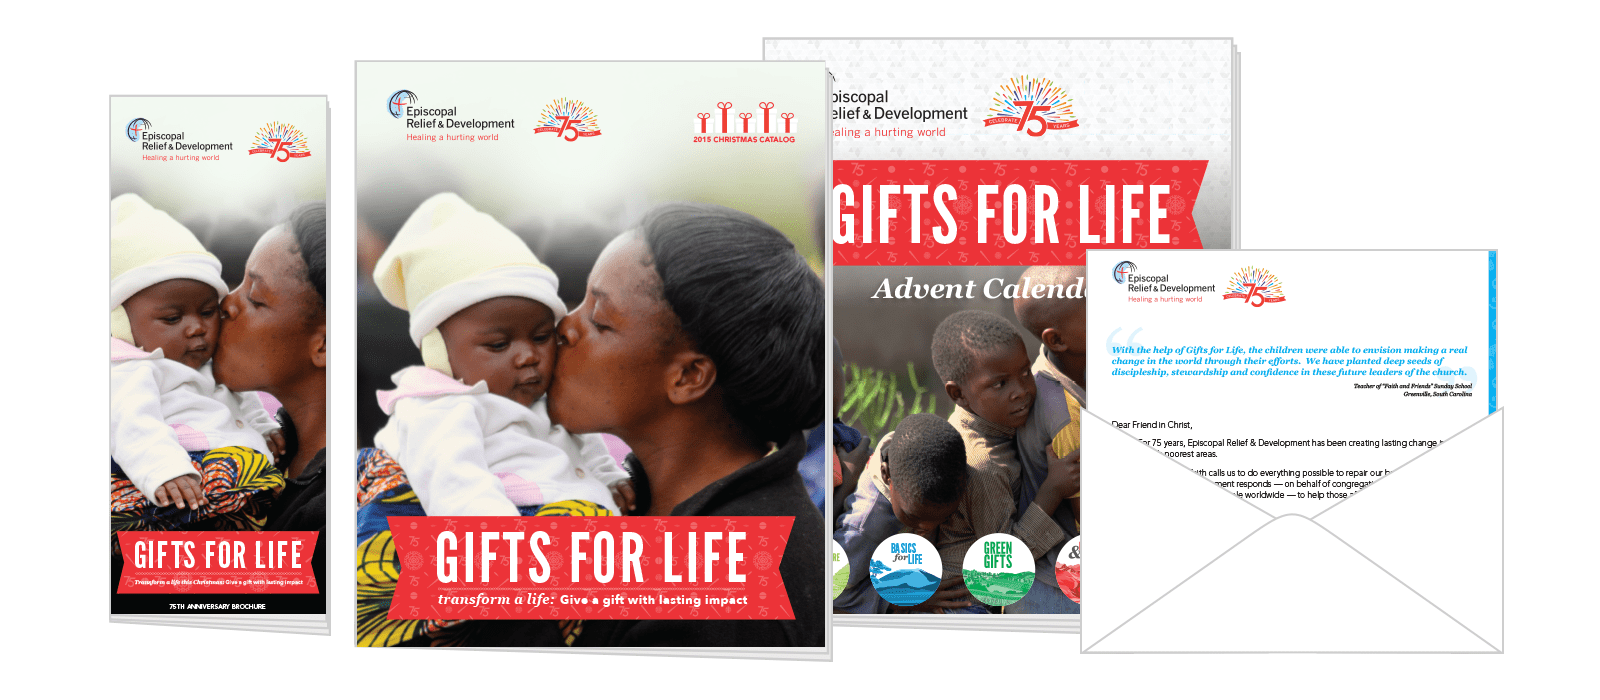 income from the catalog went up significantly and Gifts for Life continues to be a wonderful way for supporters to make a difference. On top of that, ...